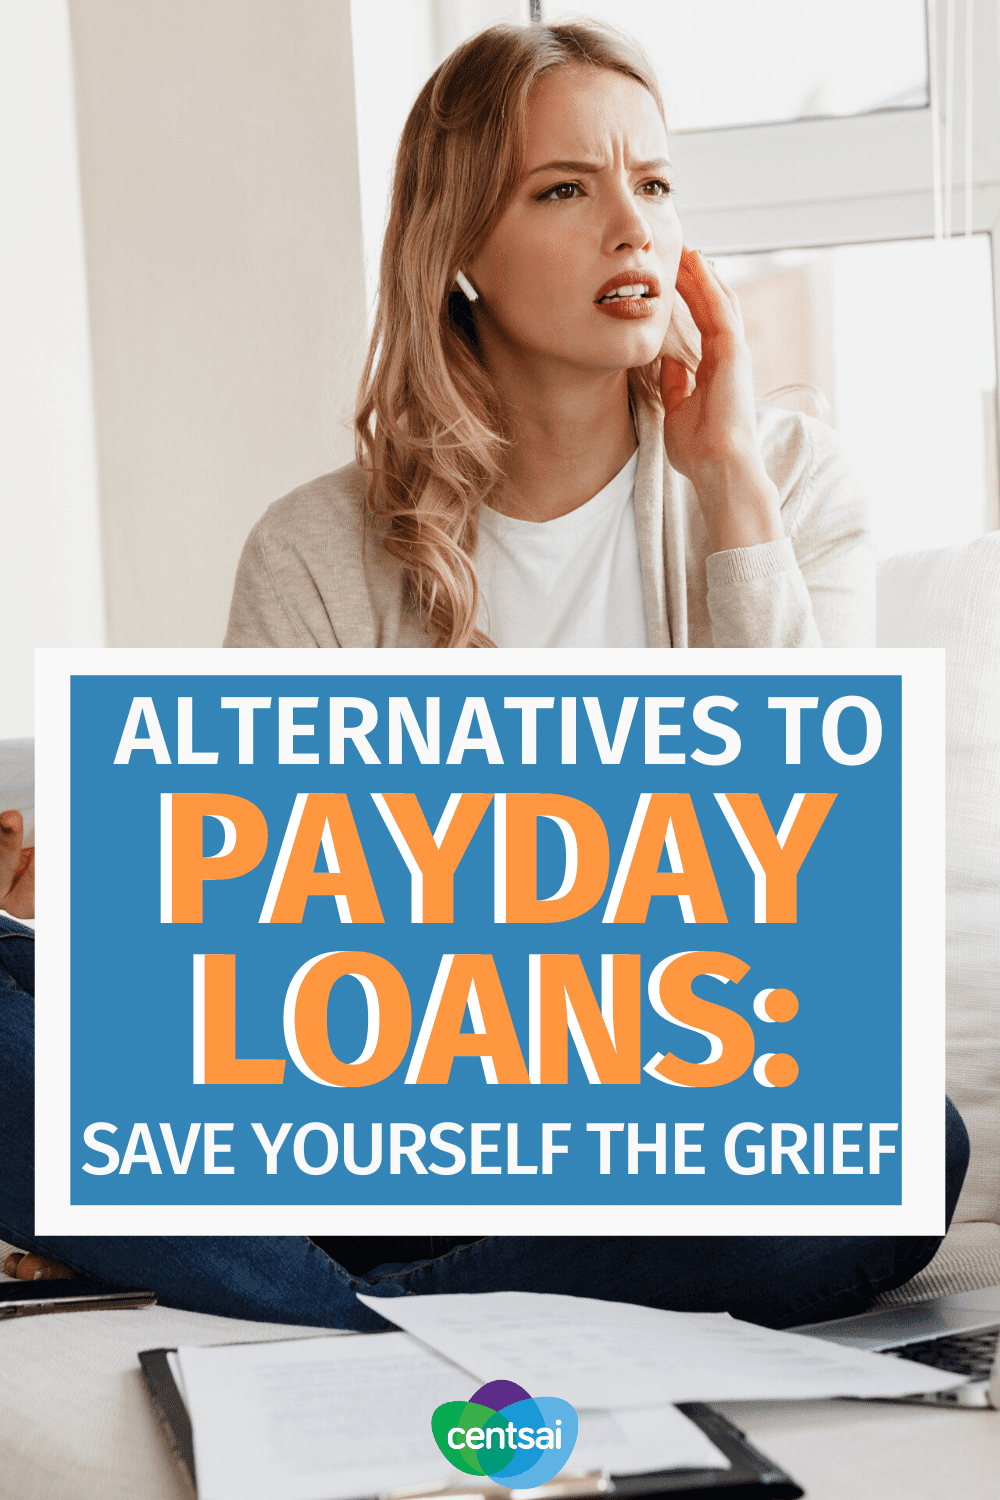 Alternatives to Payday Loans: Save Yourself the Grief